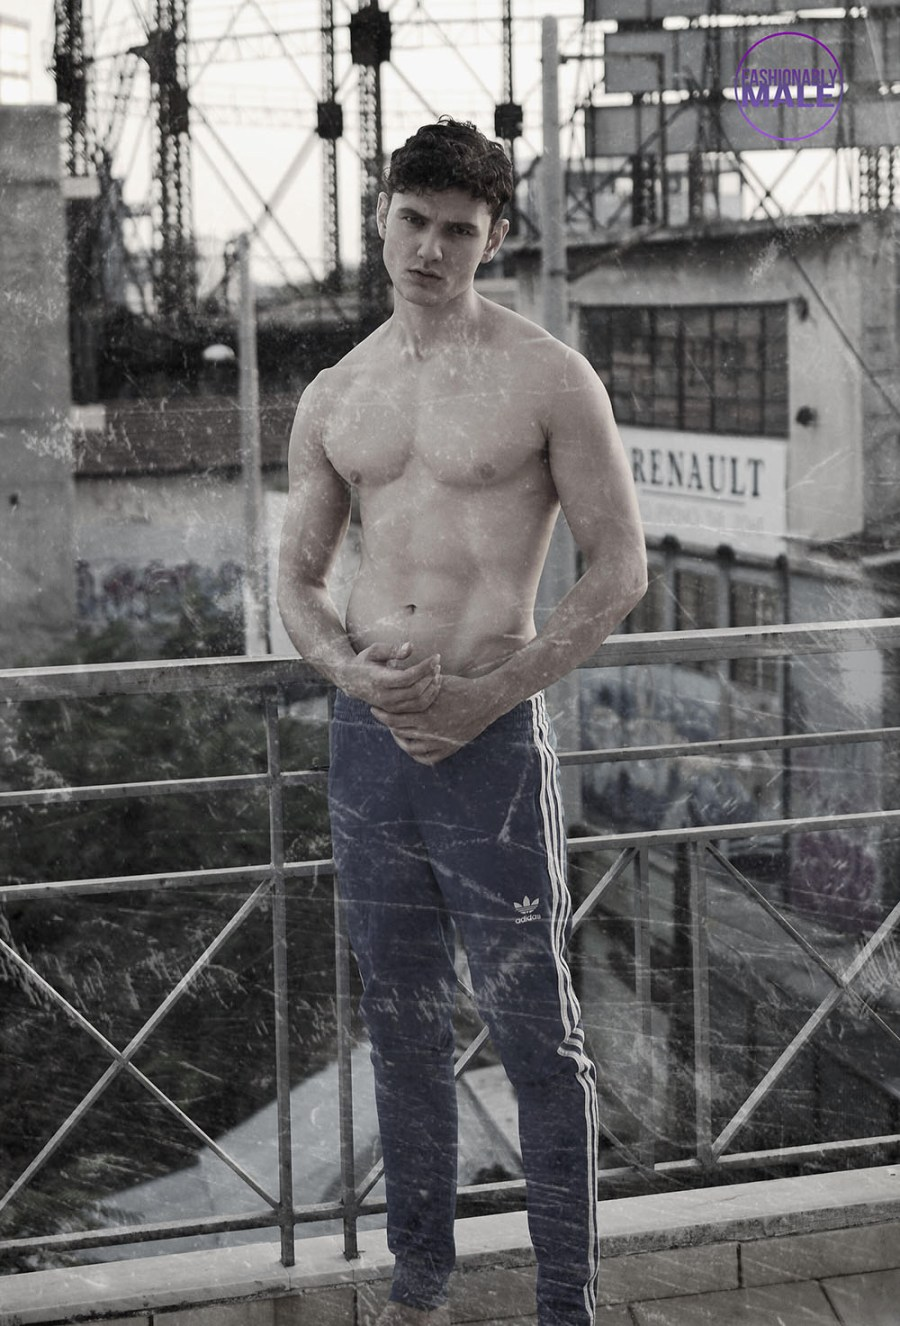 Yiorgos Pap for Fashionably Male1